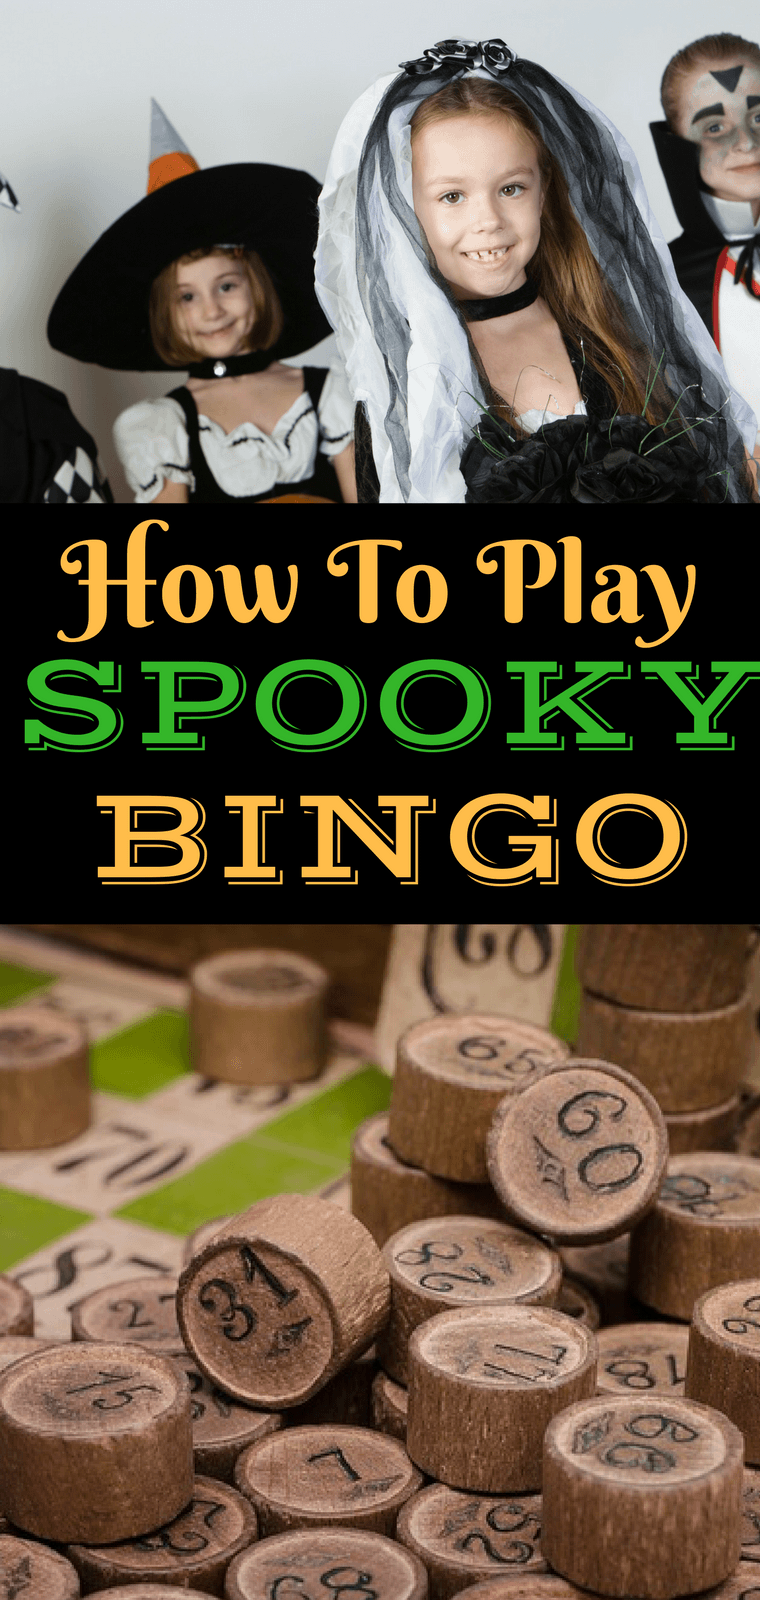 How to Play Spooky Bingo: 5 Best Tips